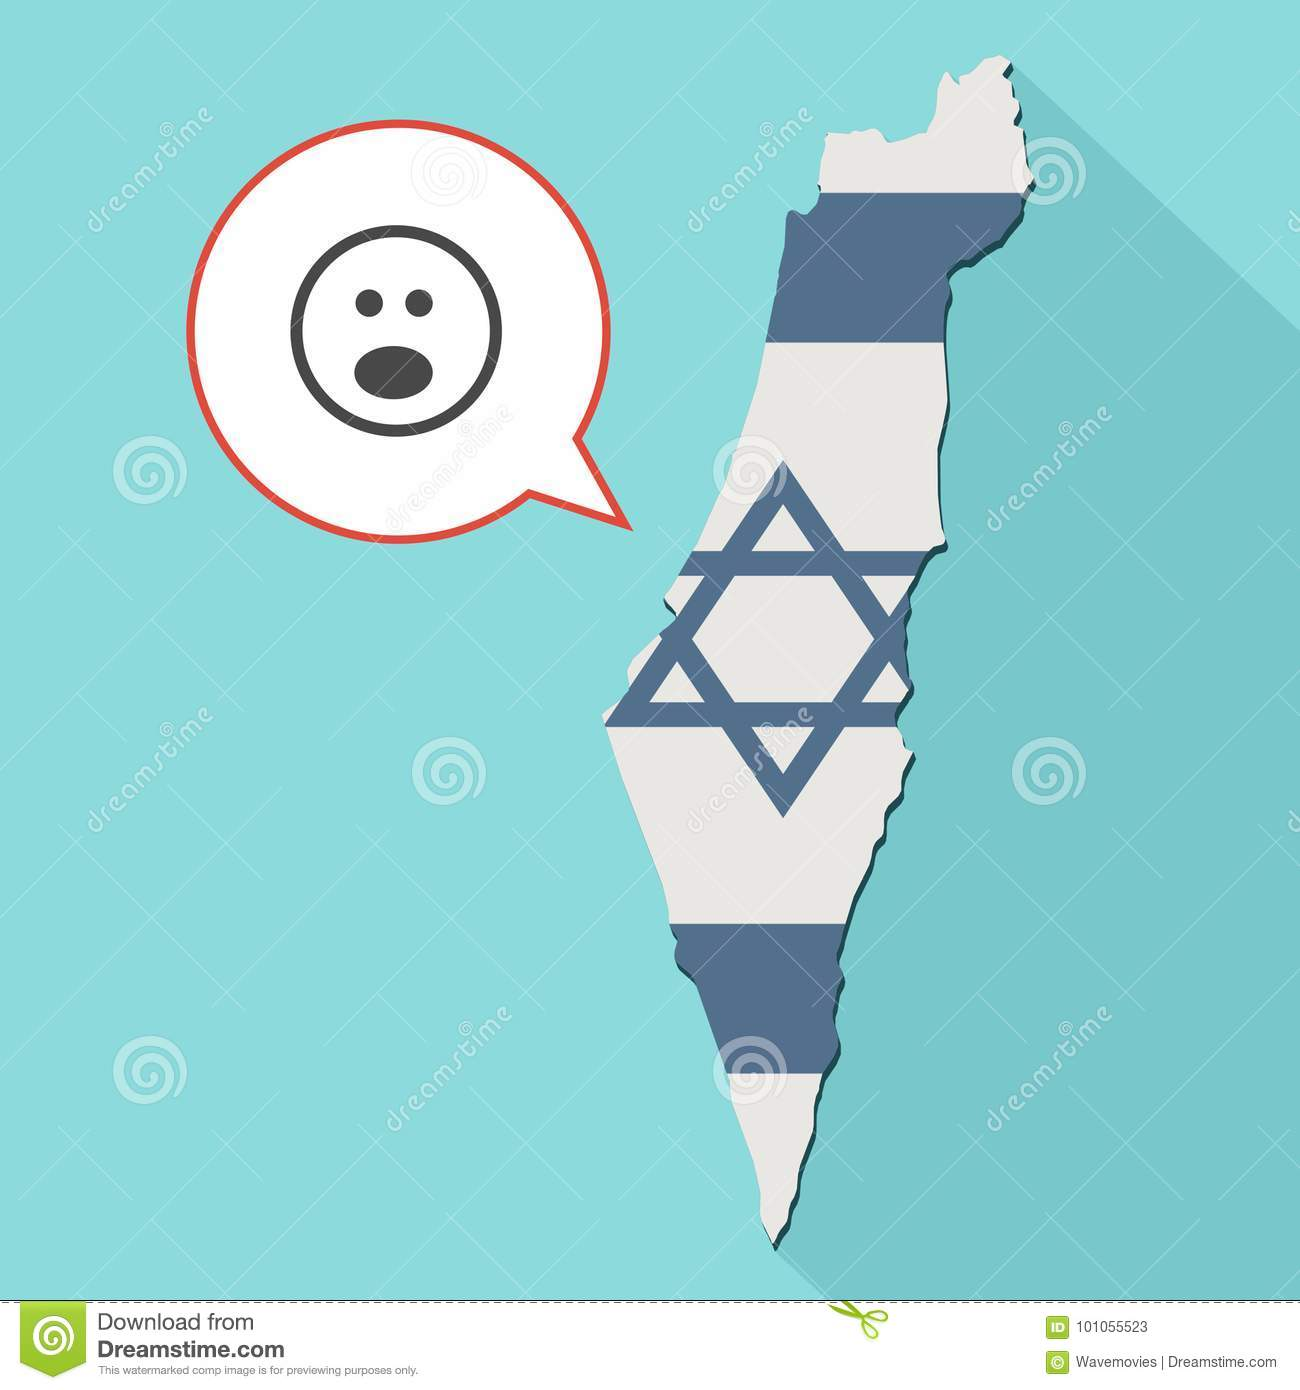 Animation of a long shadow Israel map with its flag and a comic balloon with suprise emoji face